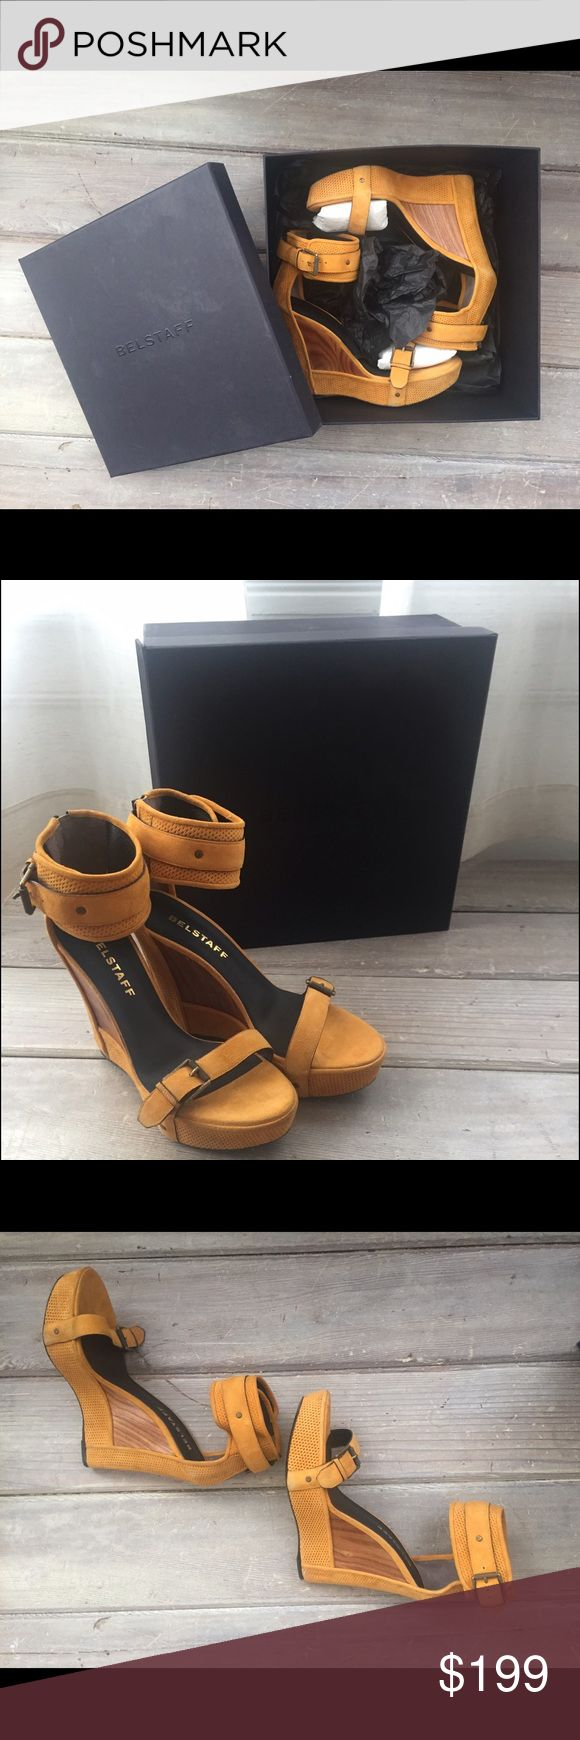 """BELSTAFF platform sandal w/ box Perforated calfskin suede. Adjustable band at open toe and adjustable ankle cuff strap. Wood veneer wedge with faux zipper detail on heel. Knurled antique brass hardware throughout. 5"""" Wedge. 1"""" platform. Made in Italy. Used in once for a photoshoot. Typical light outer rub wear on some contact points. Leather soles are near flawless. Like new! Belstaff Shoes Platforms"""